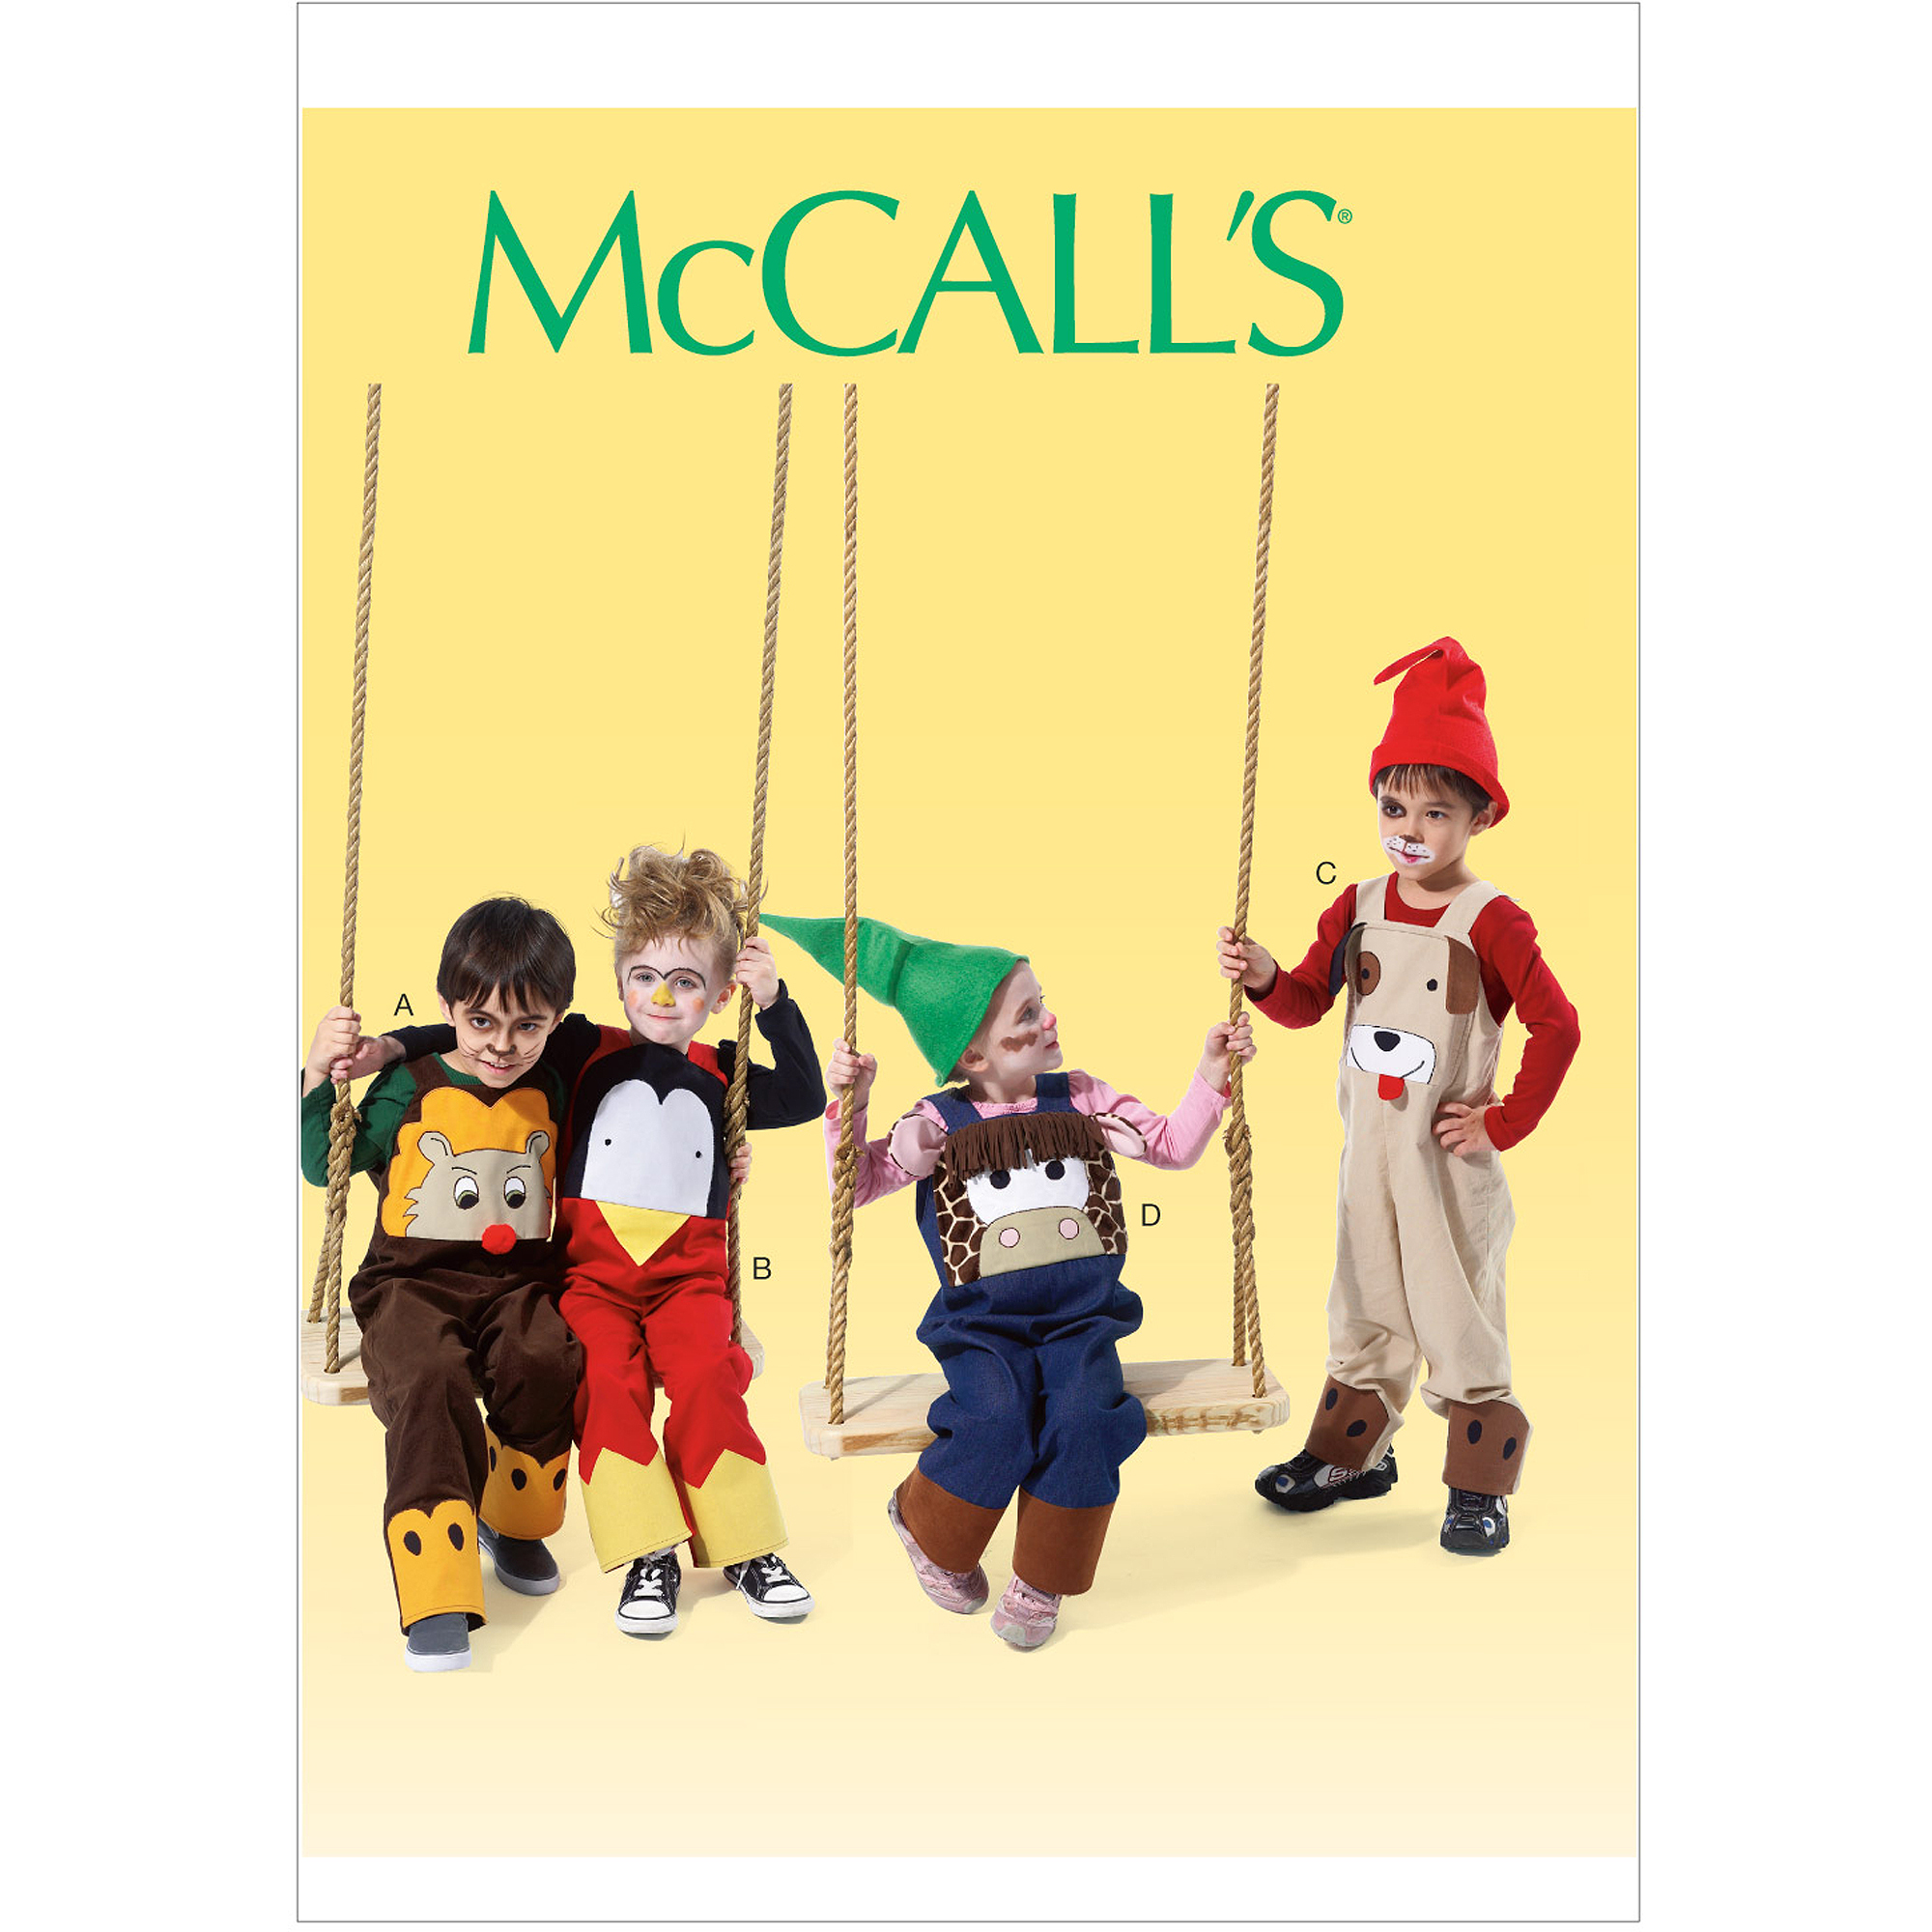 McCall's Pattern Toddlers' and Children's Overalls, CB (1, 2, 3)